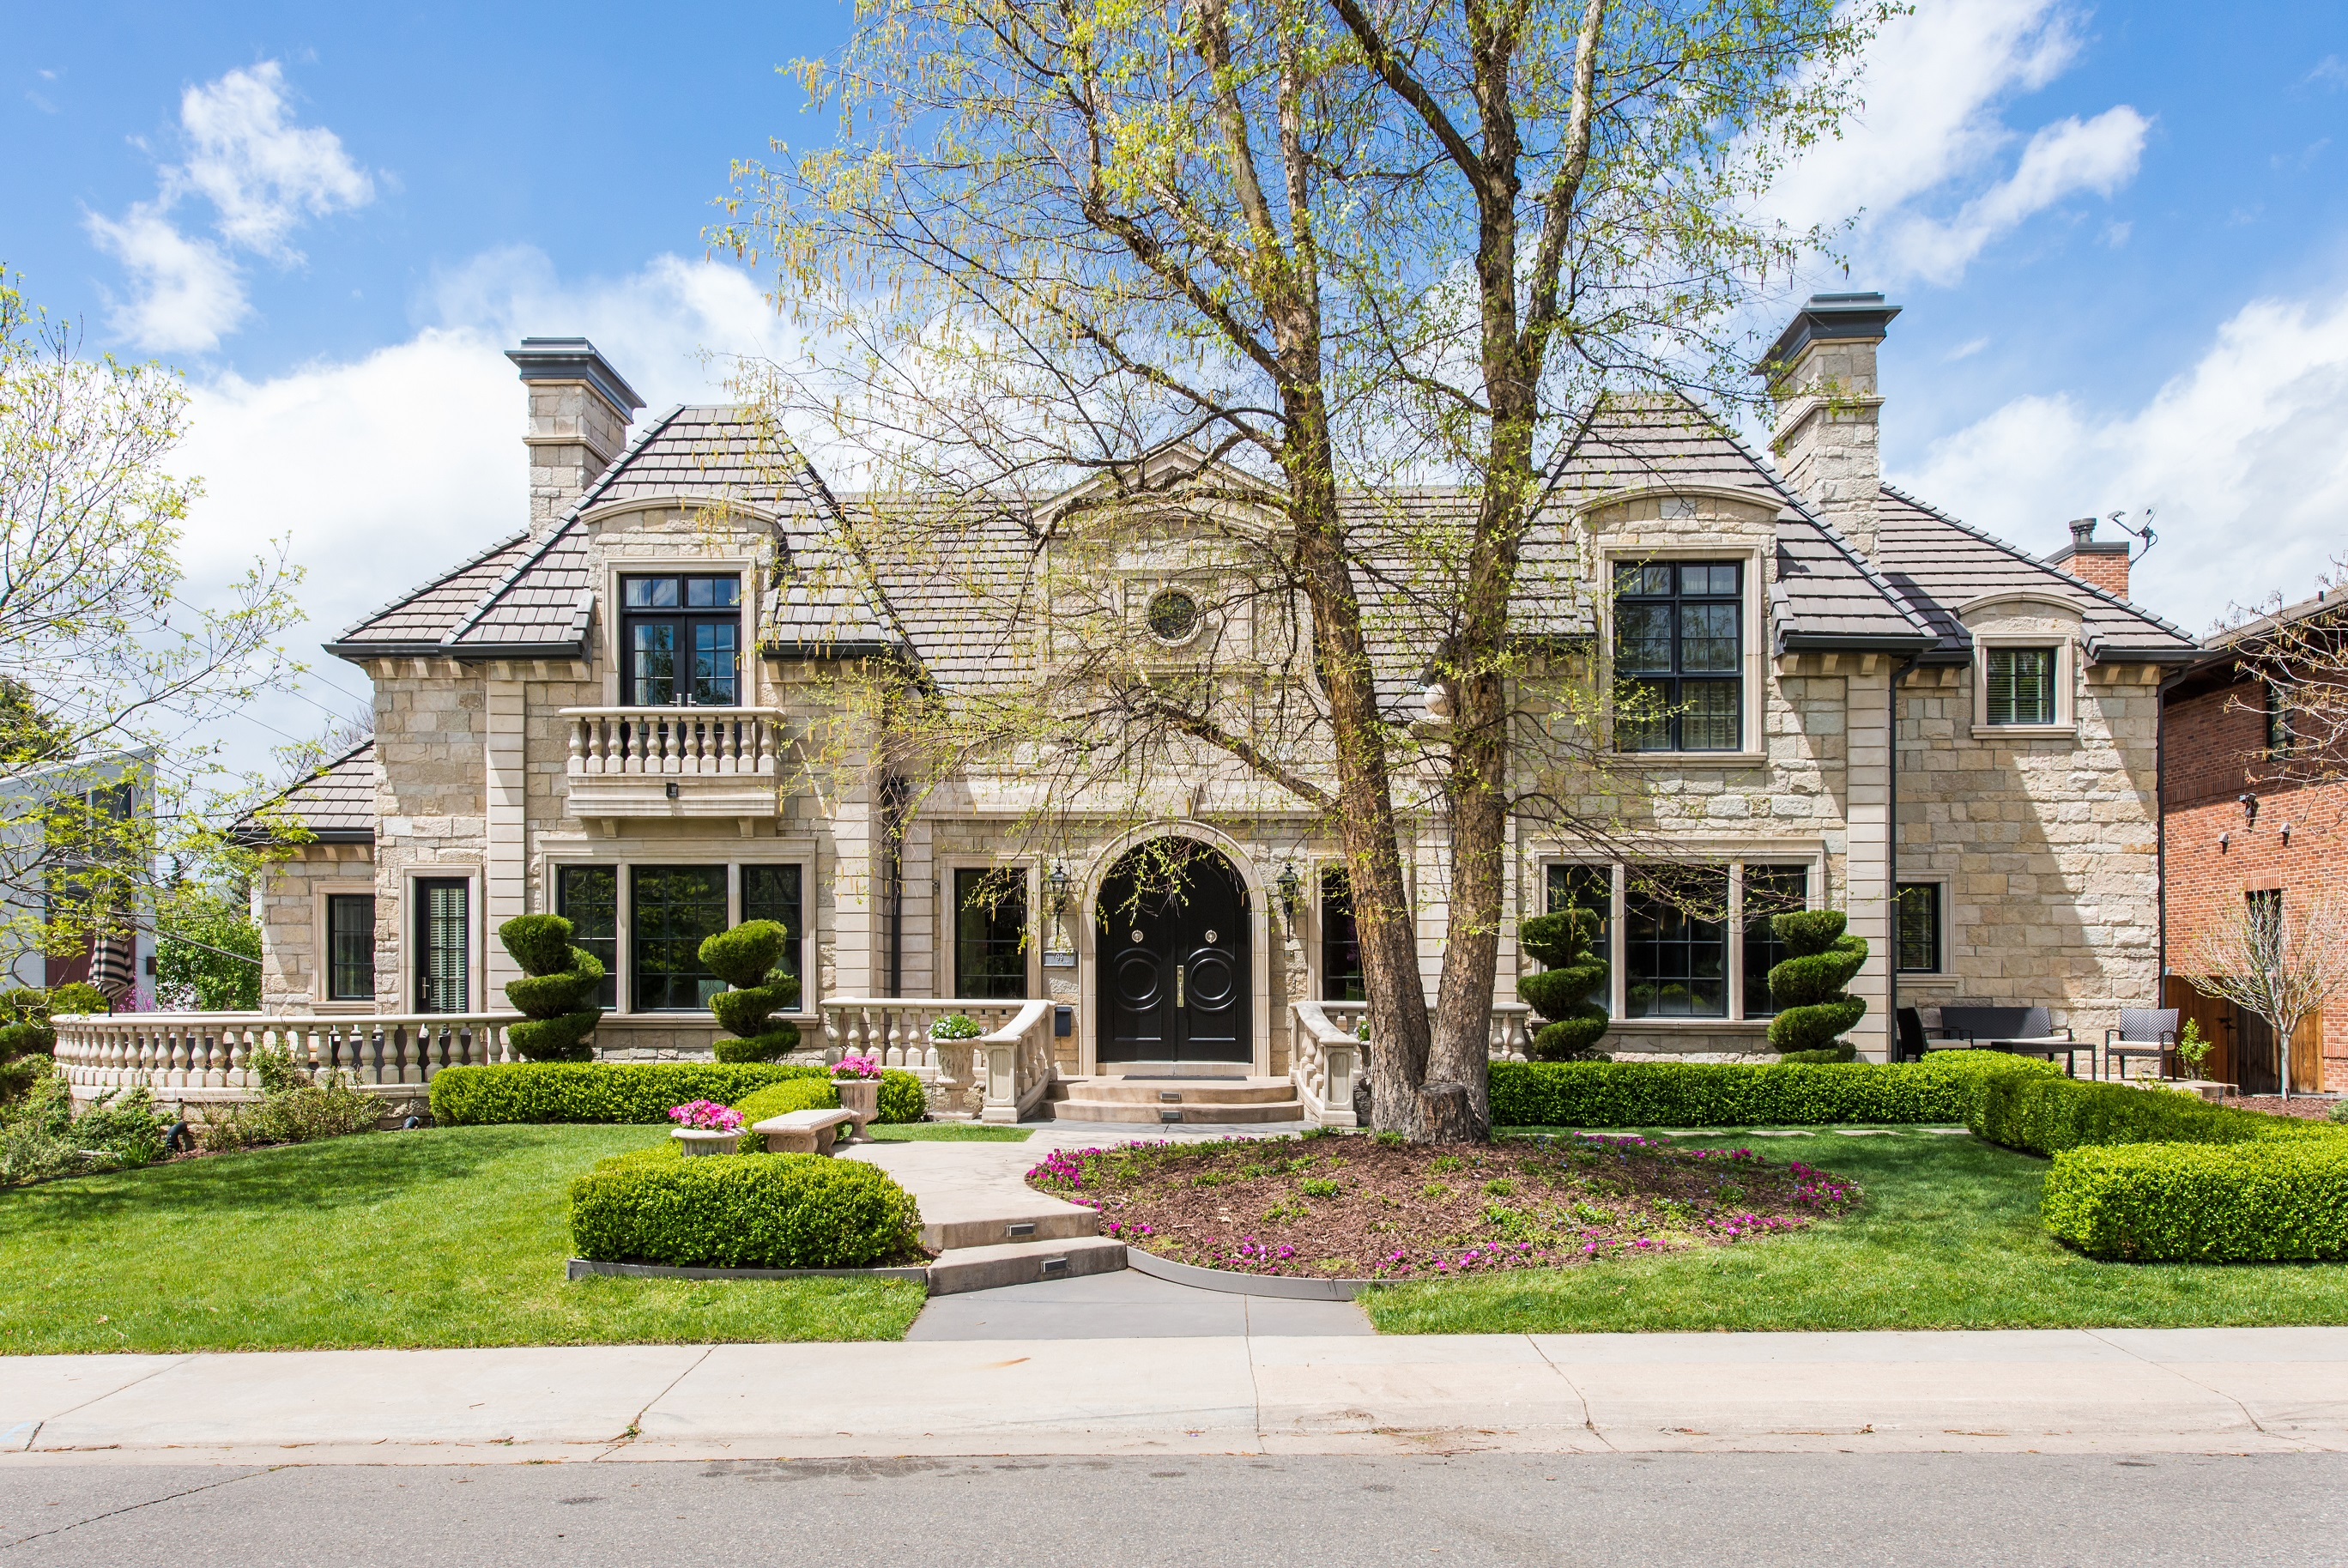 Single Family Home for Sale at AN EXTRAORDINARY FRENCH PROVINCIAL RESIDENCE ON ONE OF HILLTOP'S PREMIER BLOCKS 99 South Bellaire Street Hilltop, Denver, Colorado, 80246 United States